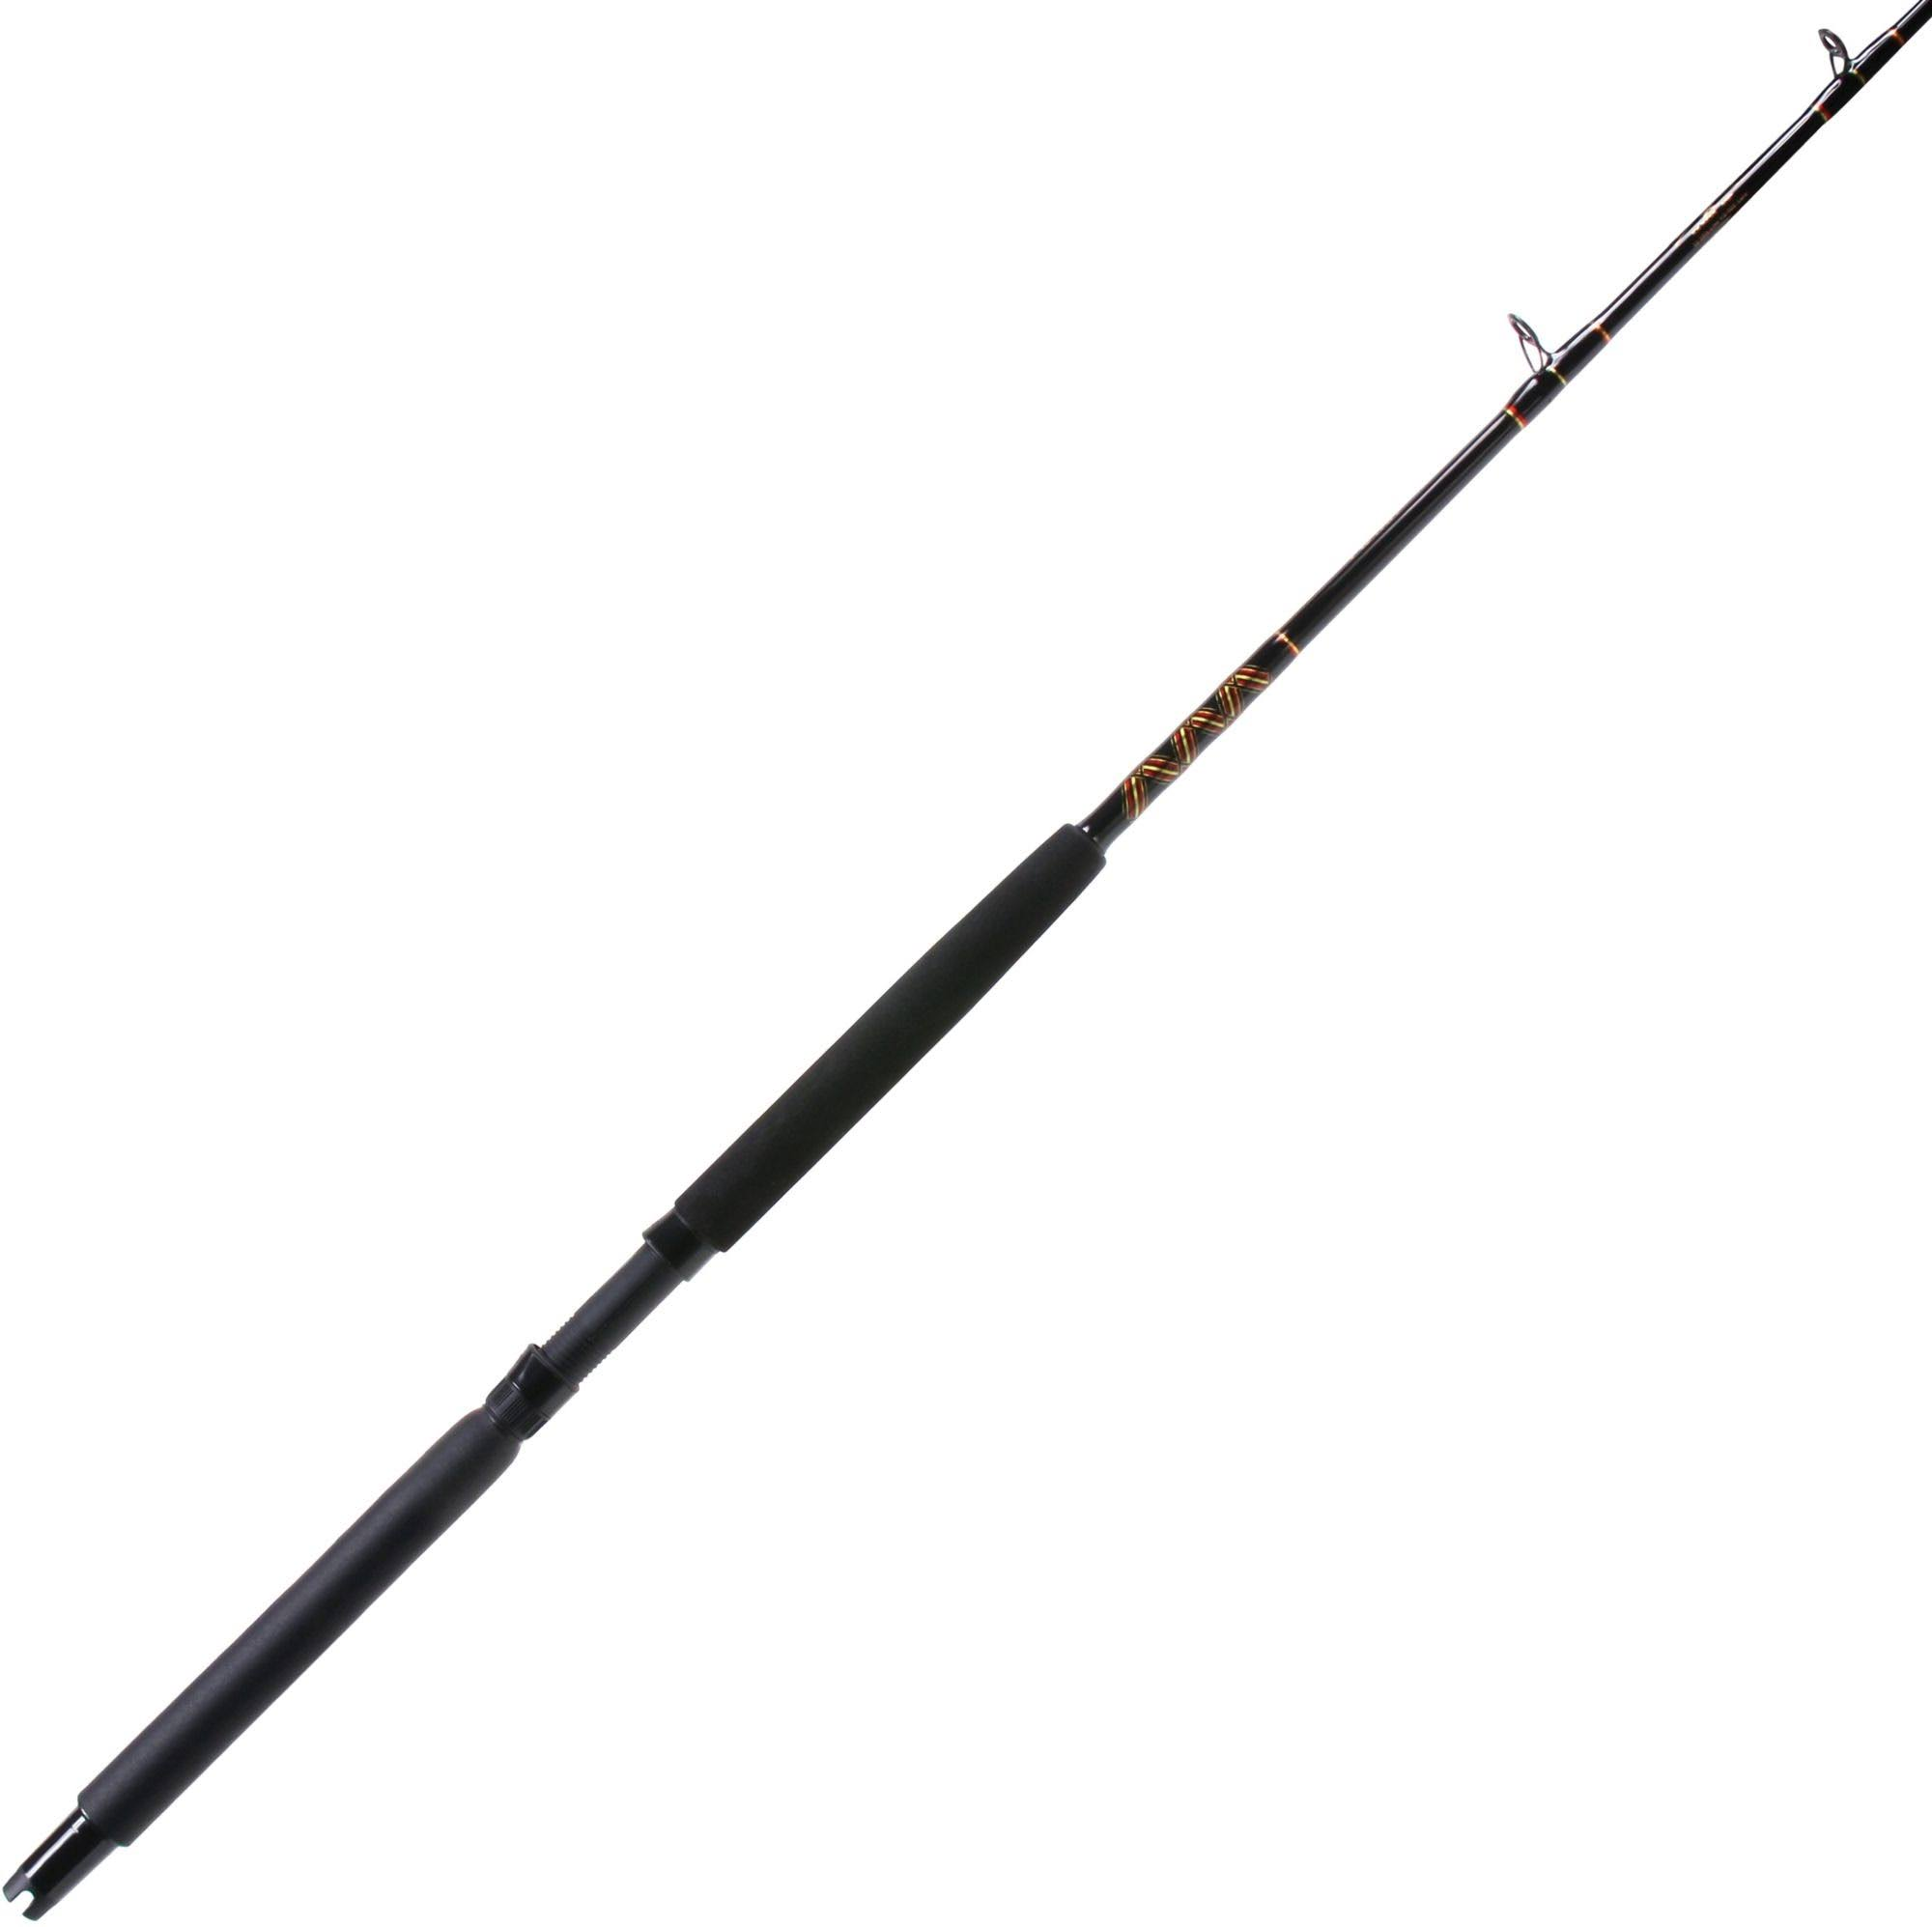 Star Rods EXKF Aerial Live Bait Conventional Rod